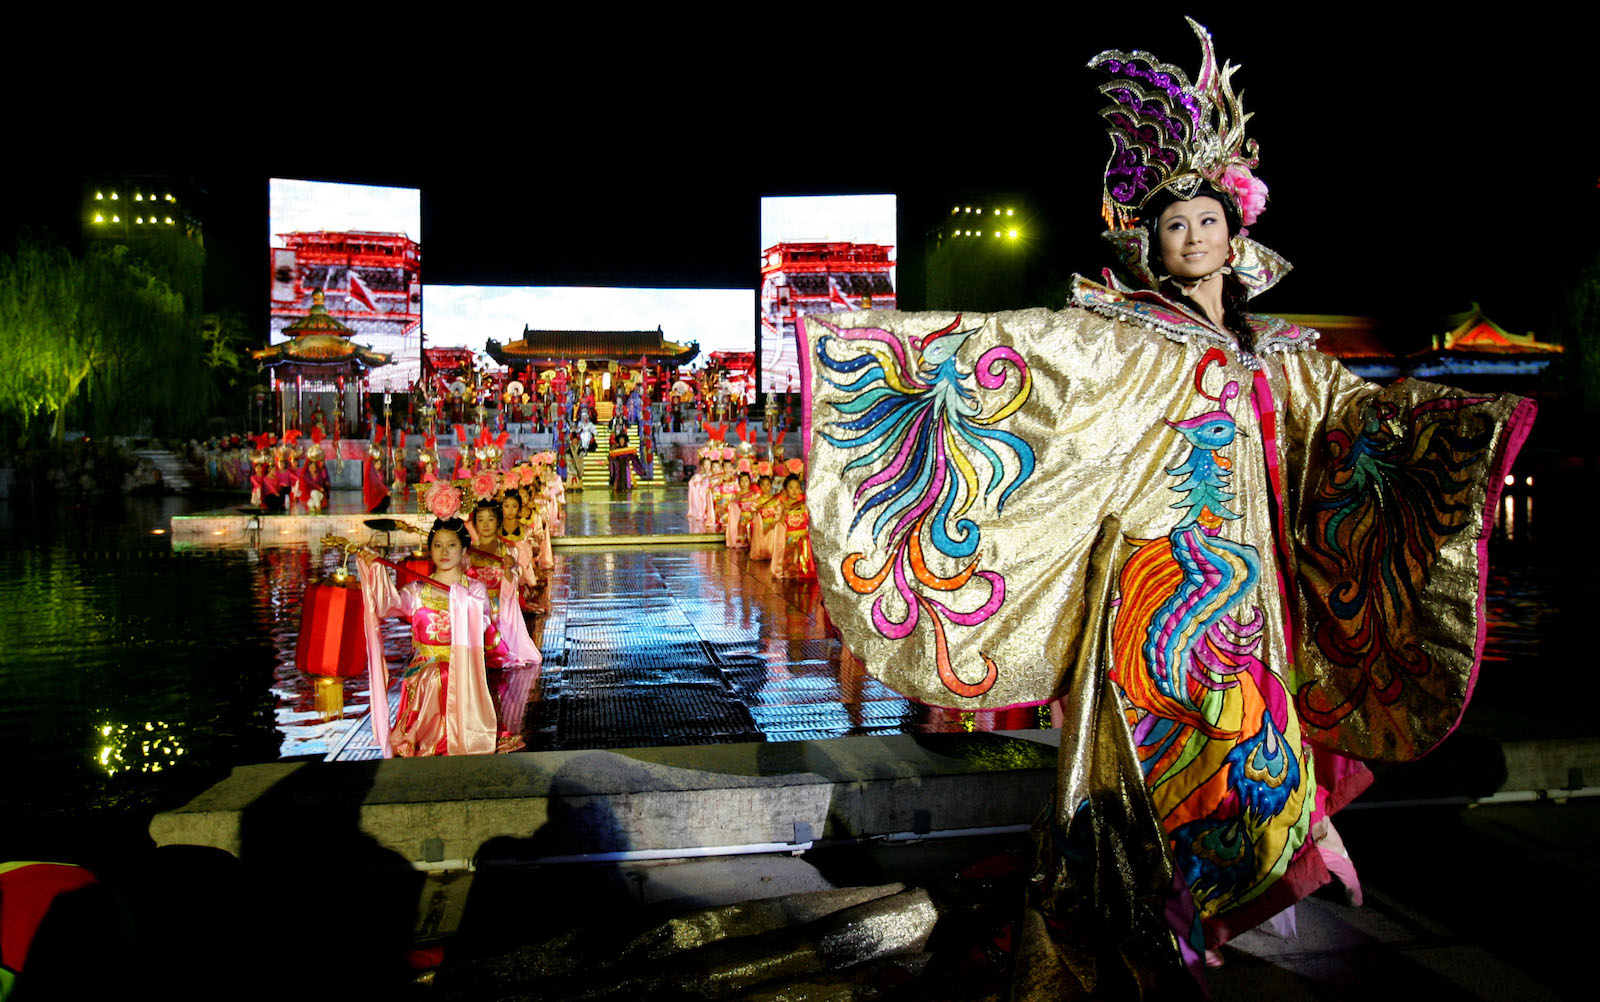 China's Concubine Dramas Have Lost the Emperor's Favor